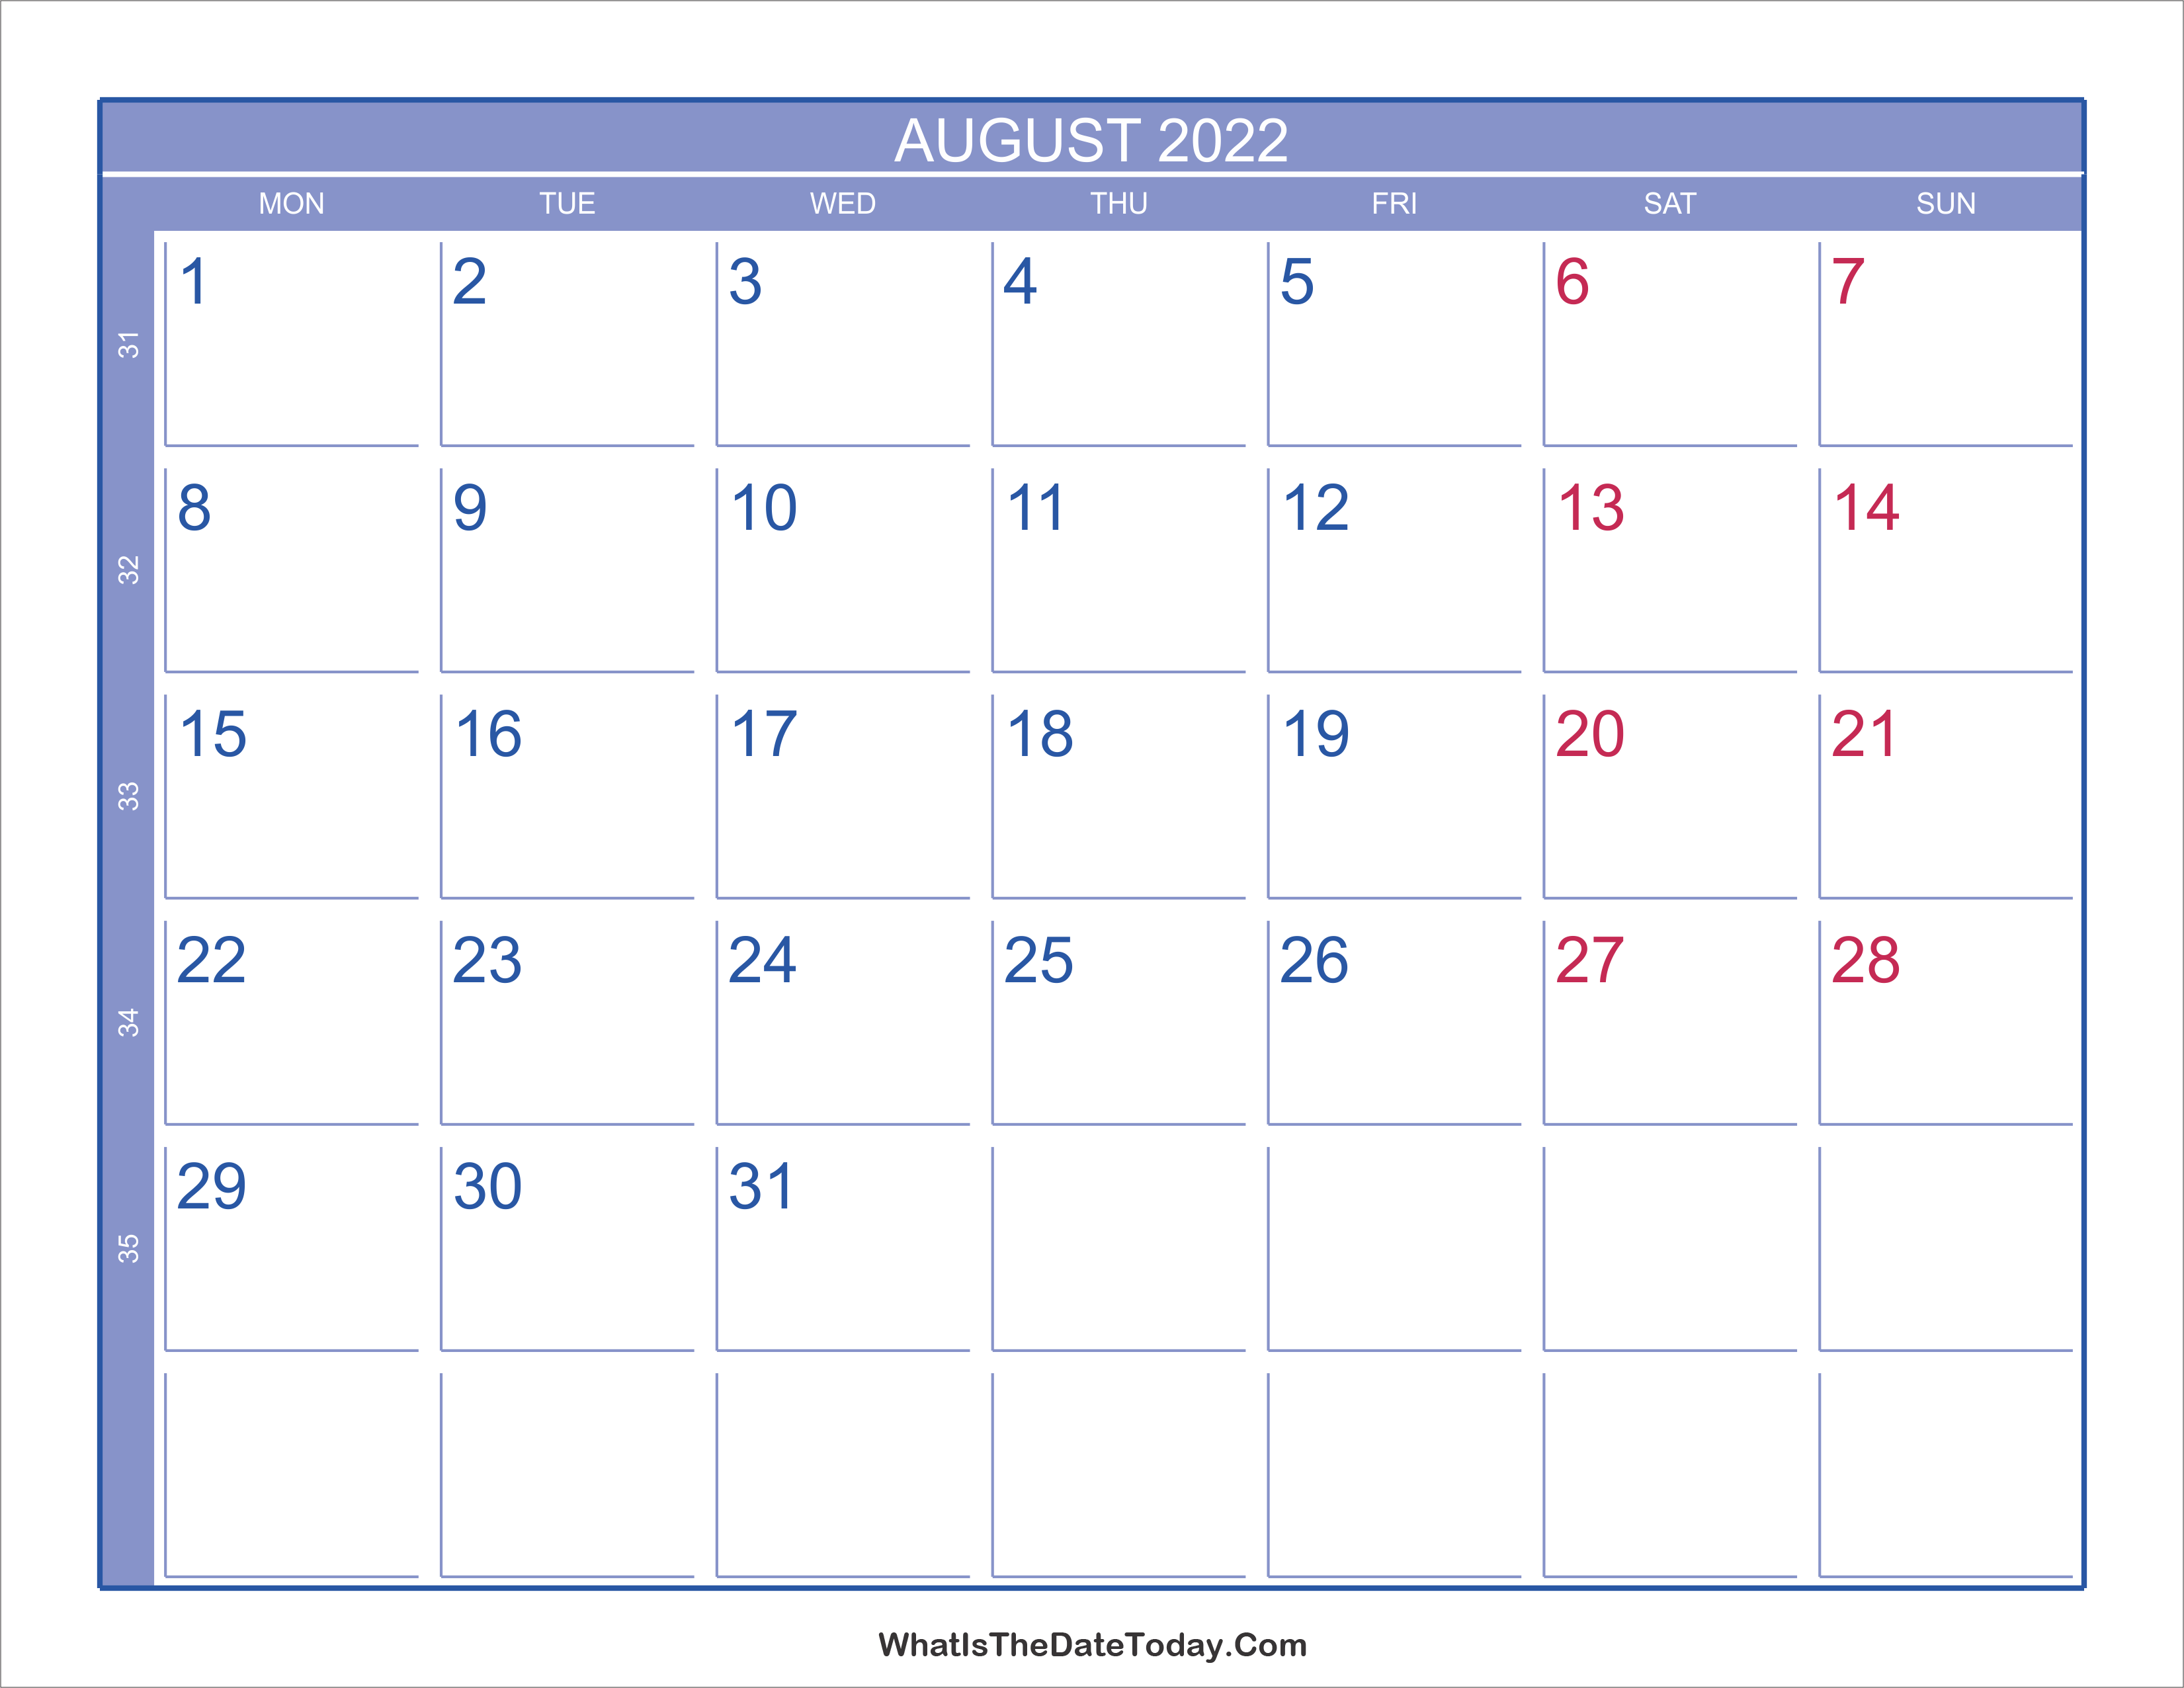 2022 August Calendar.2022 August Calendar With Week Numbers Whatisthedatetoday Com